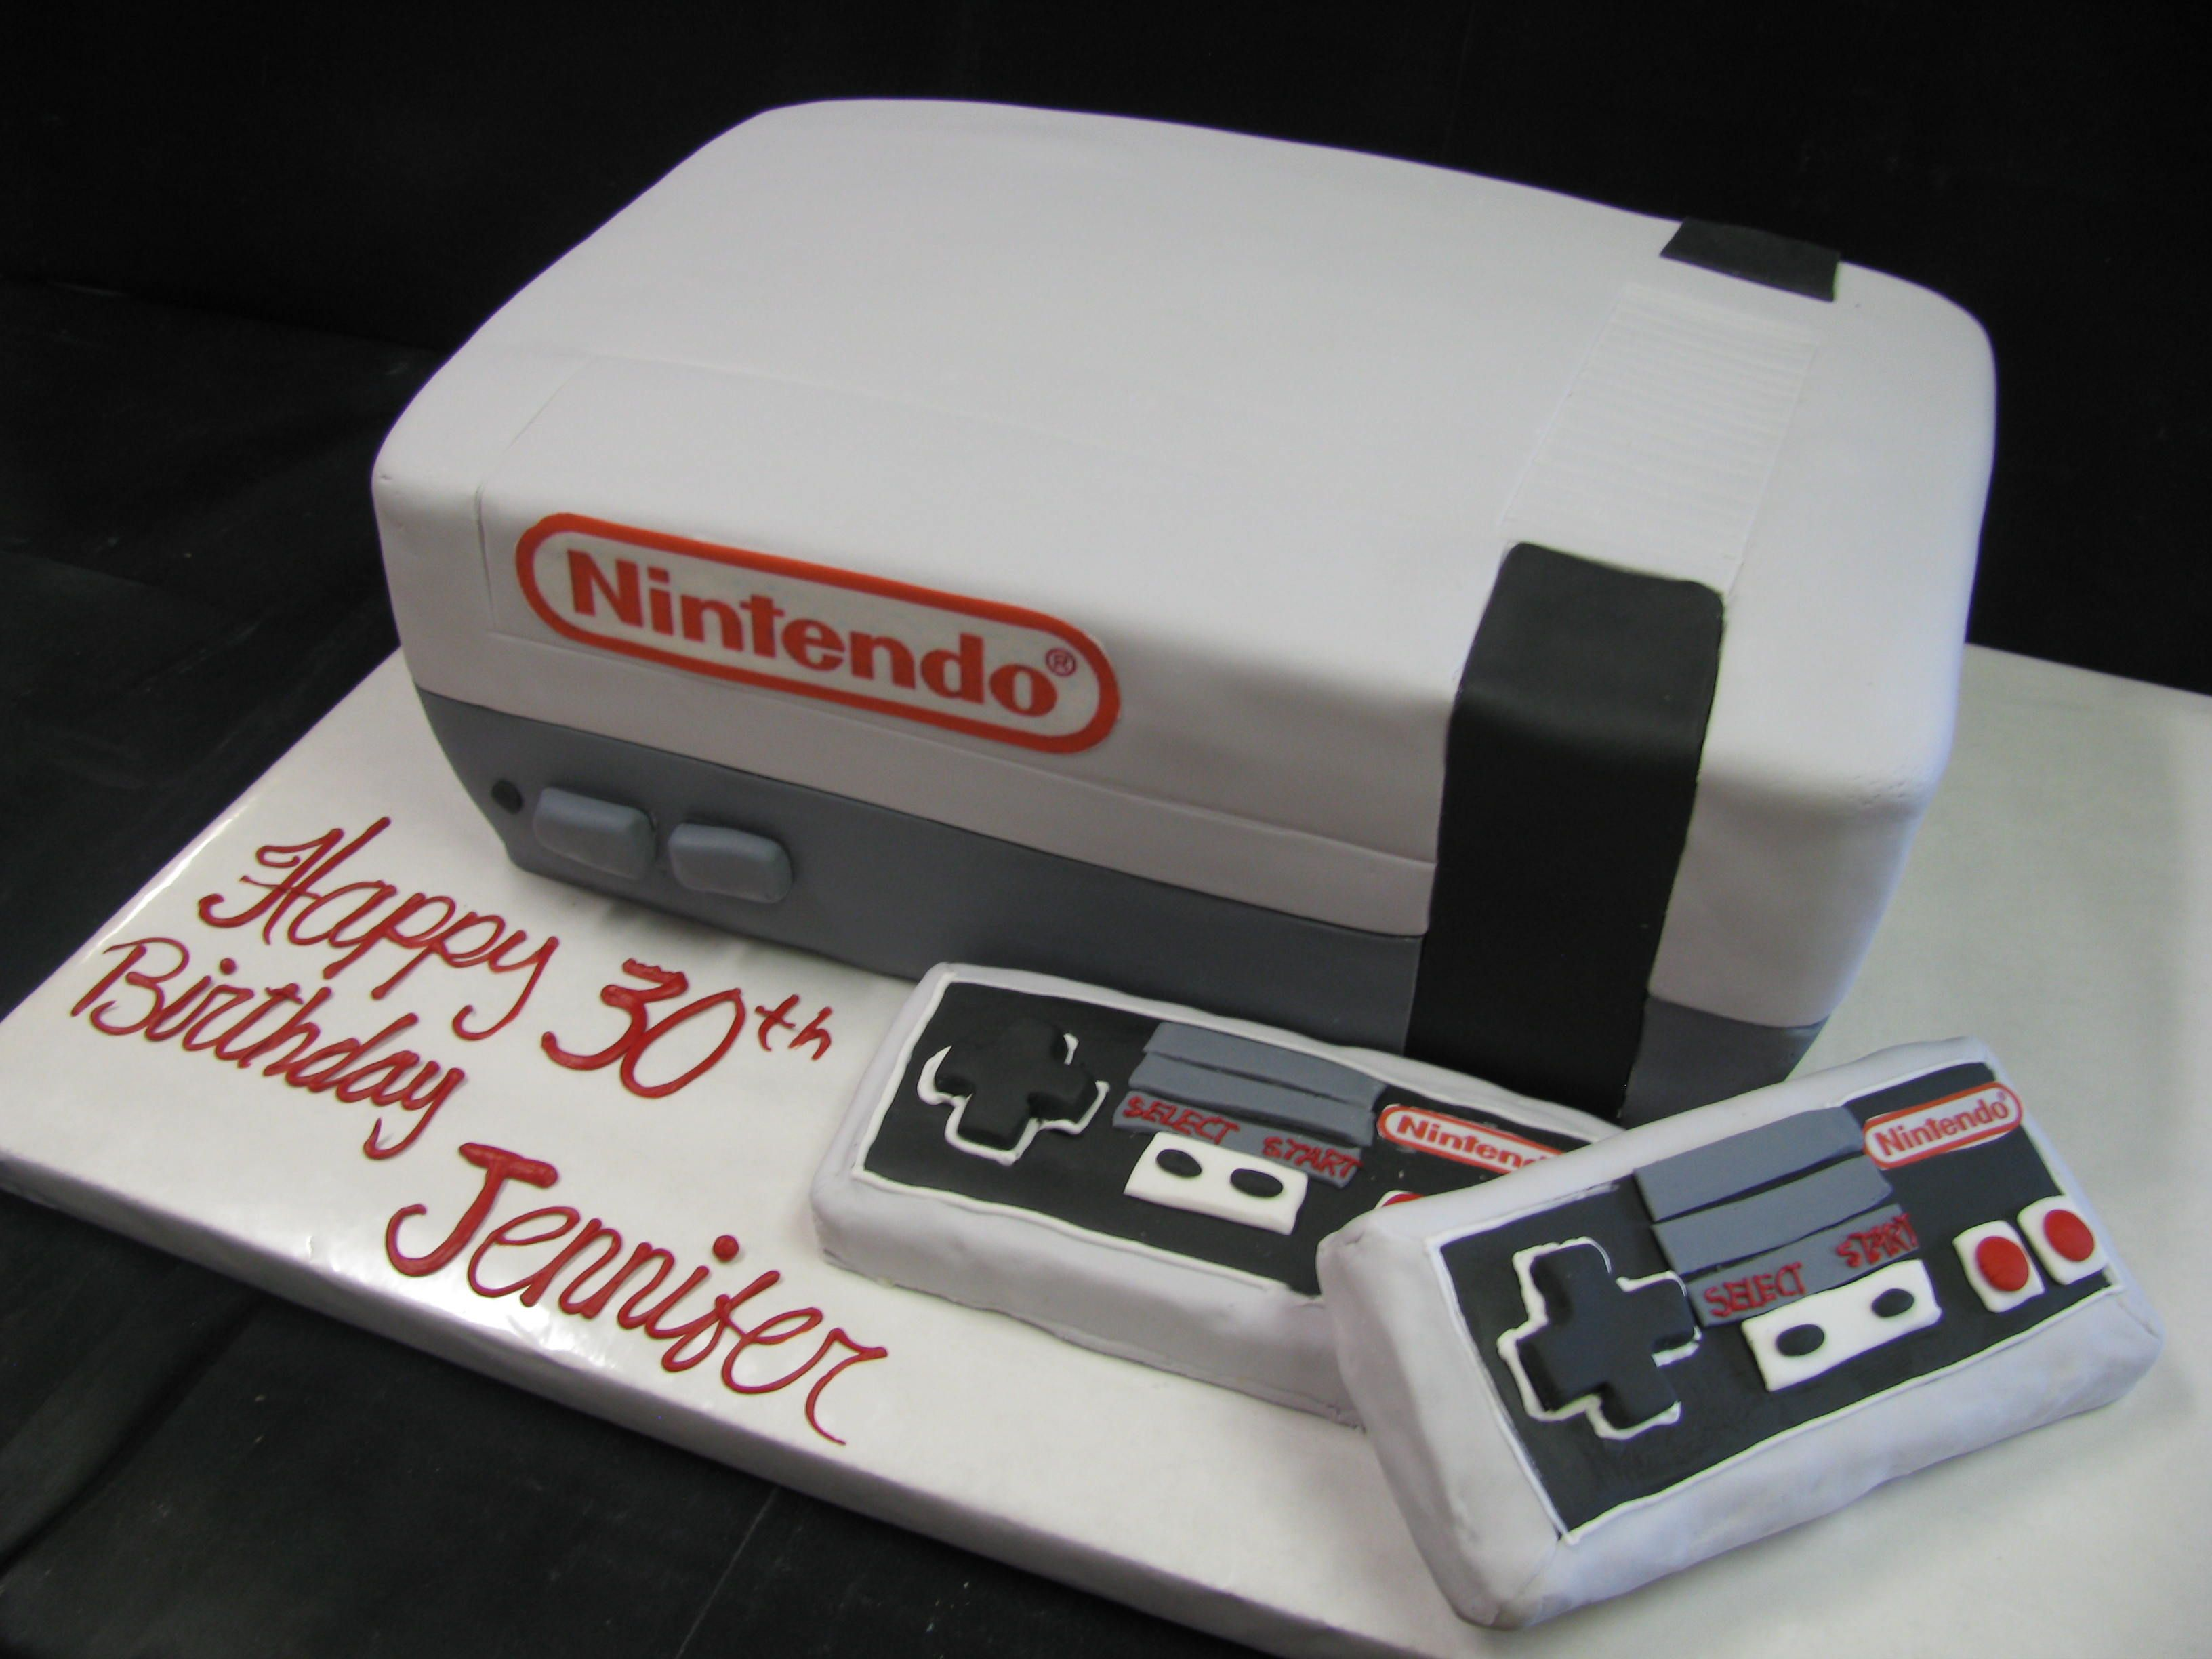 Nintendo Cake Not Only For Kids